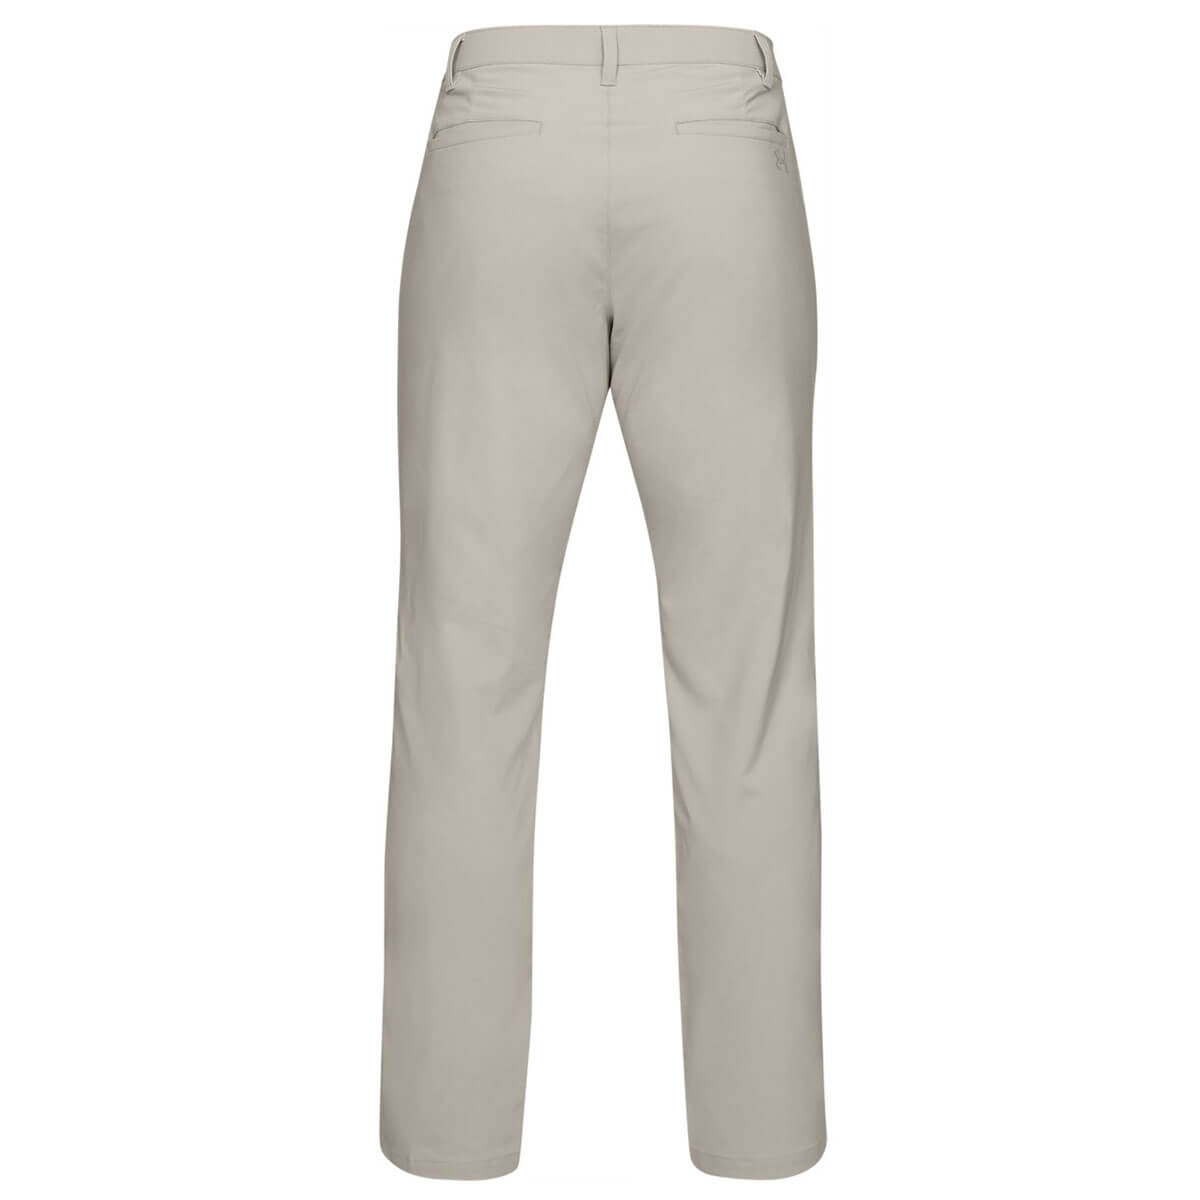 Under-Armour-Mens-2019-EU-Tech-Stretch-Straight-Golf-Trousers-30-OFF-RRP thumbnail 13